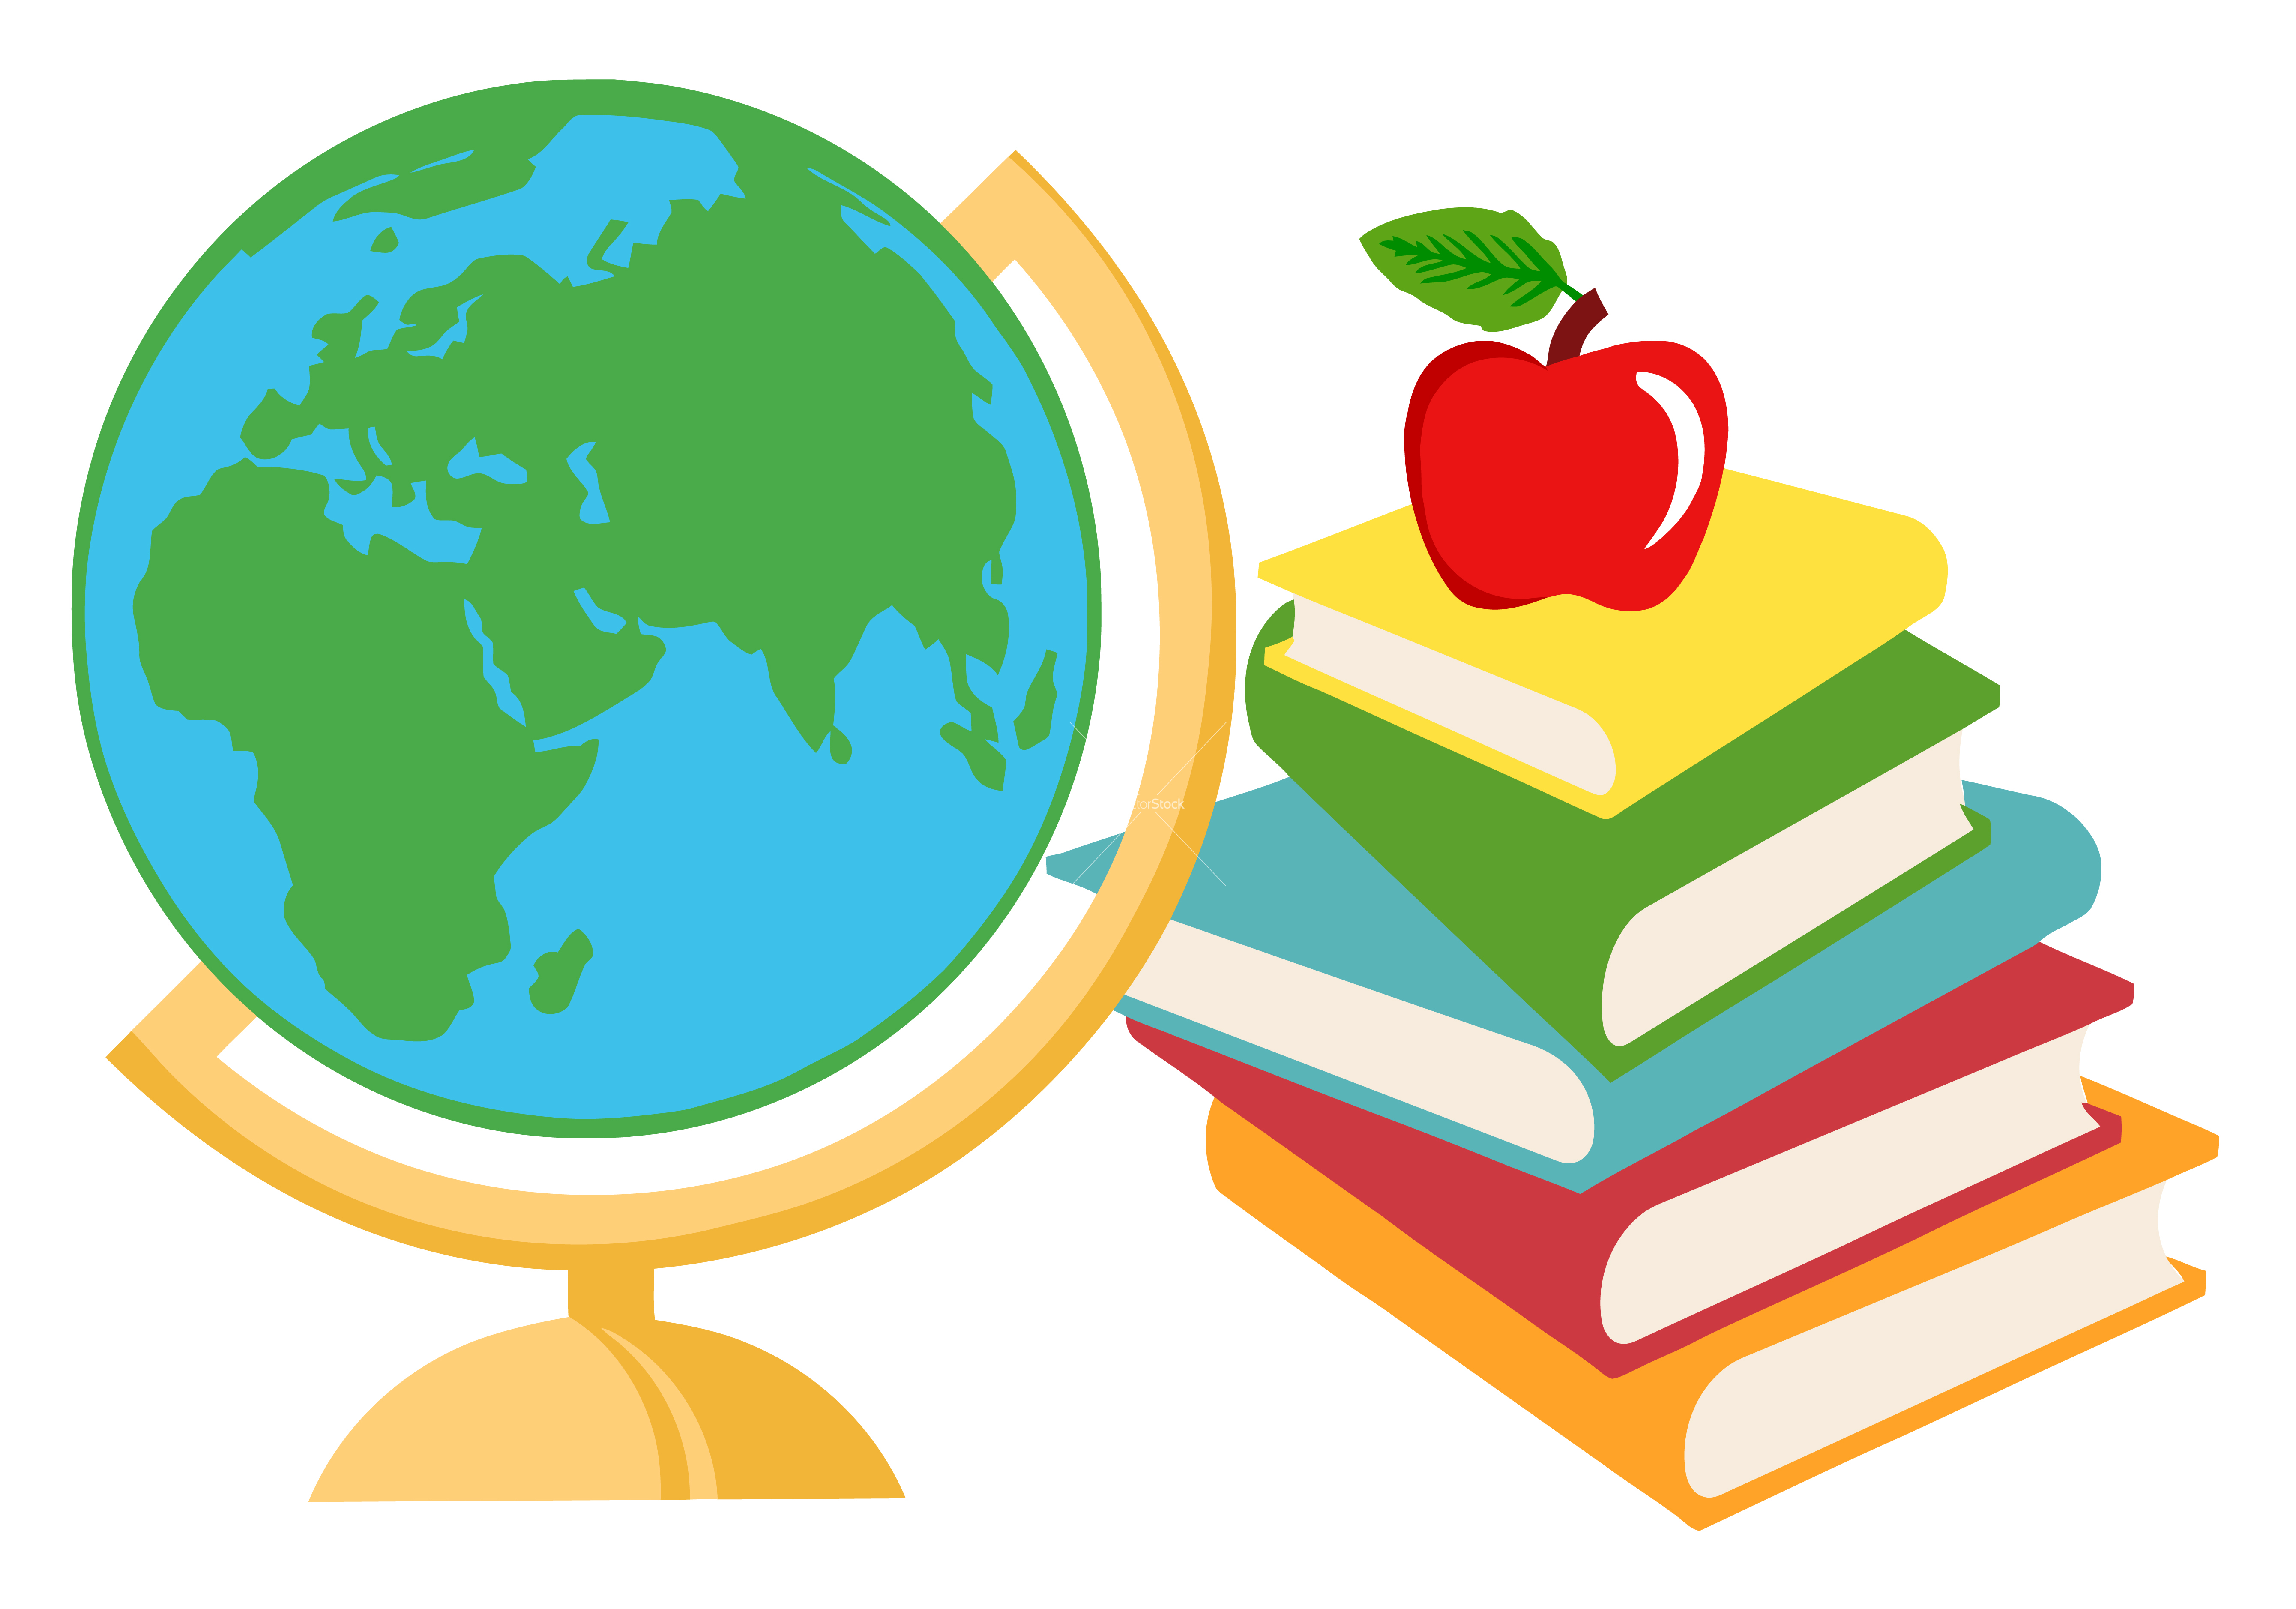 Geography clipart globe Clipart Others School Geography Clipart